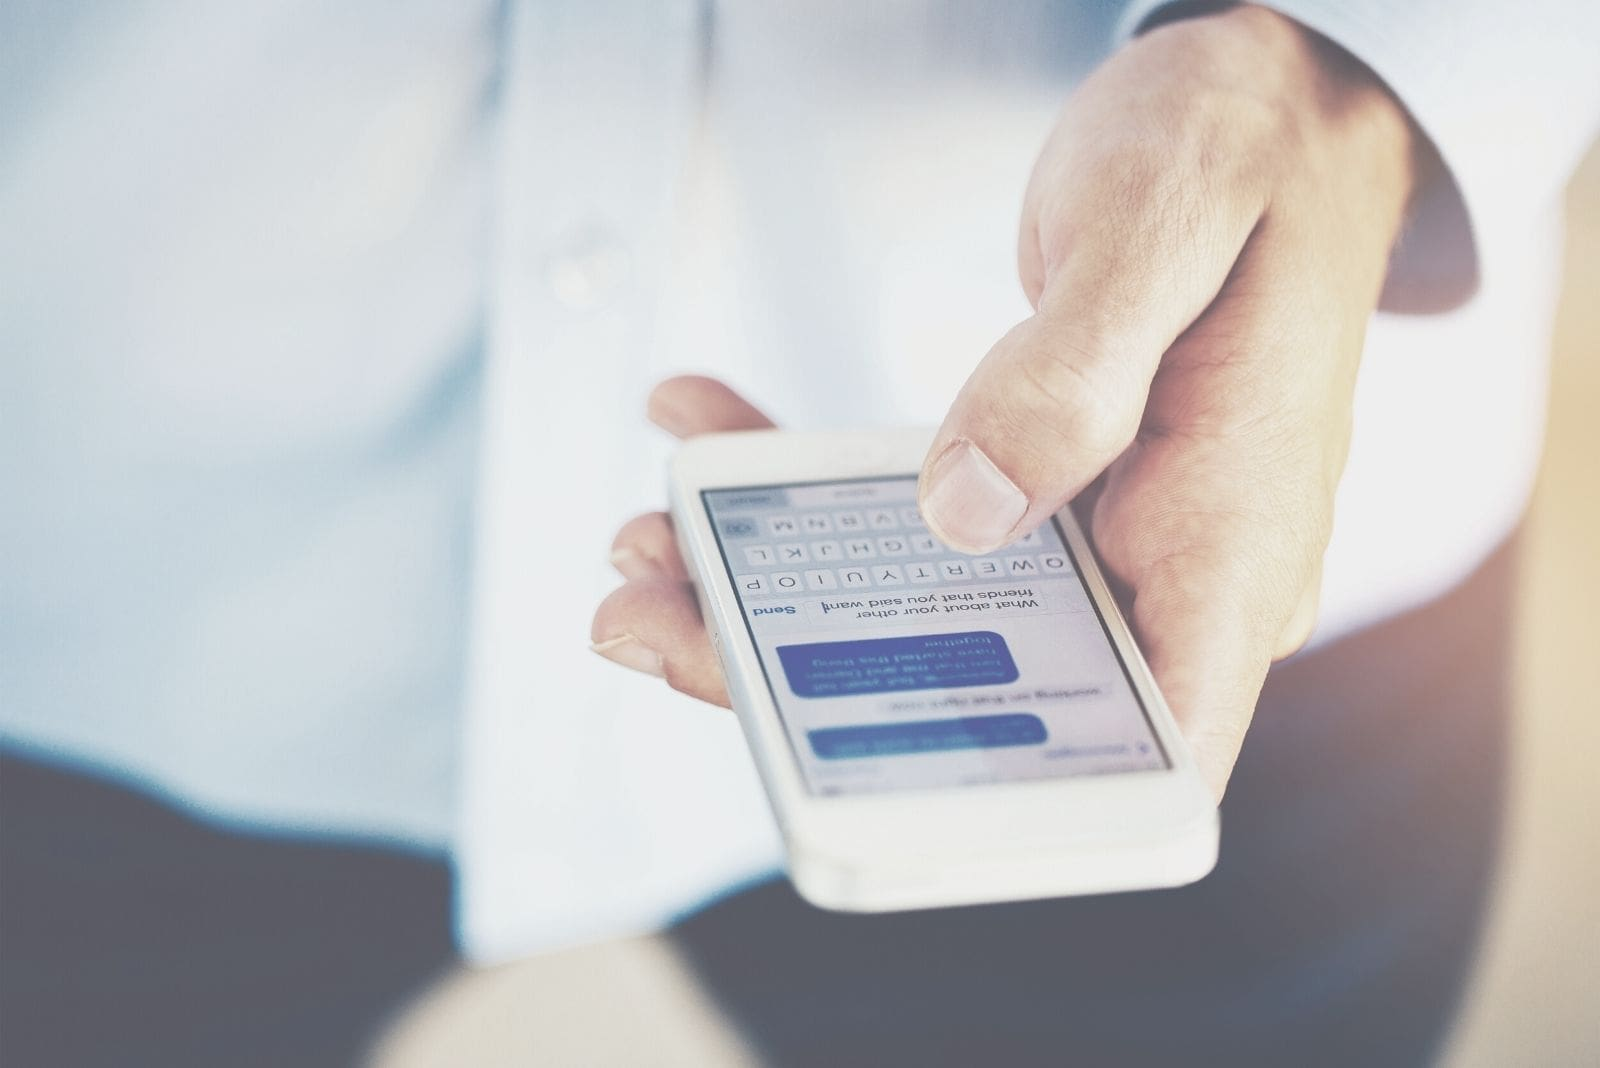 focused photography of a man's hand holding a phone and texting